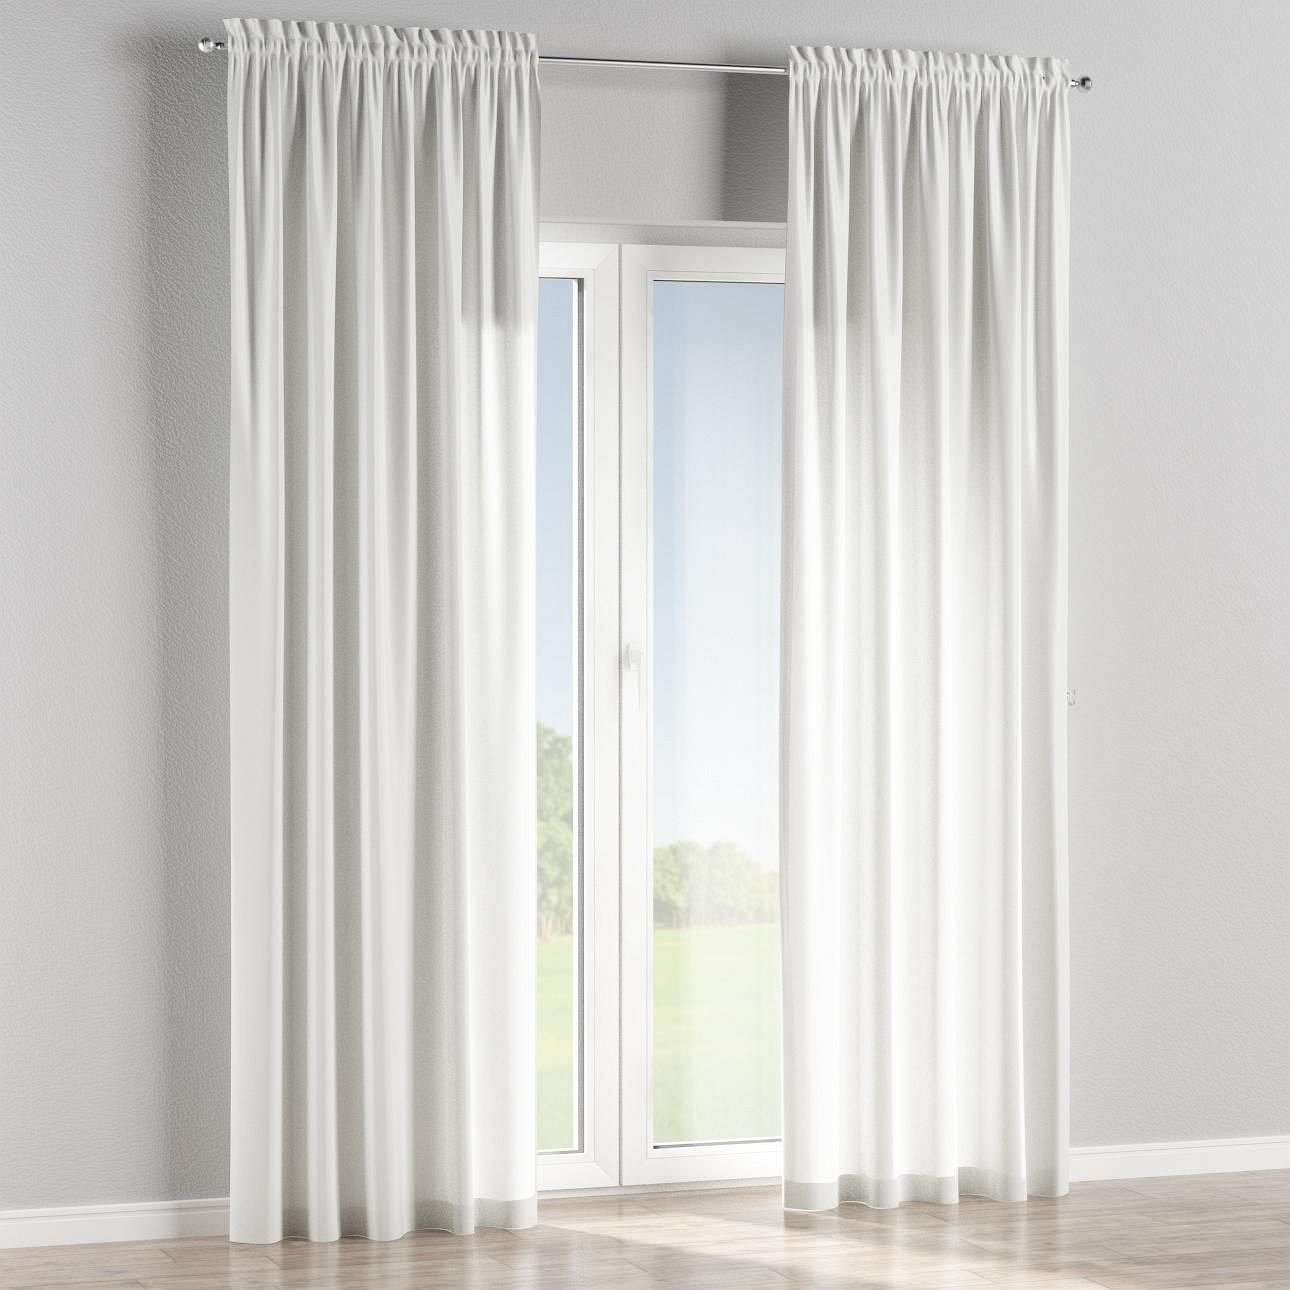 Slot and frill curtains in collection New Art, fabric: 140-21